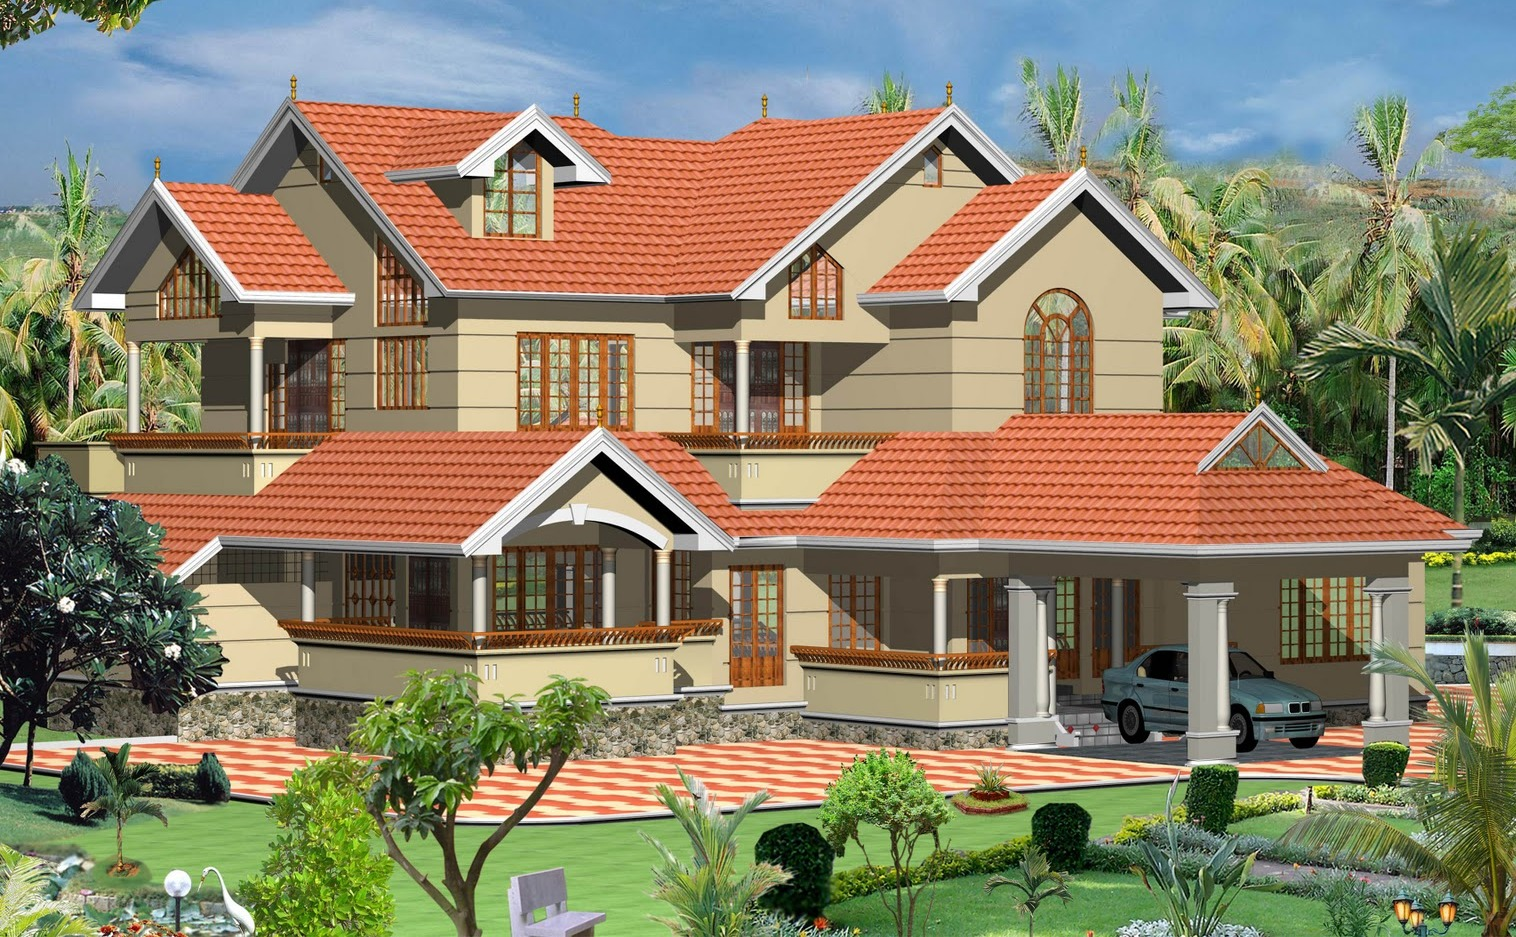 Architectural plans for houses unique house plans for Global house plans